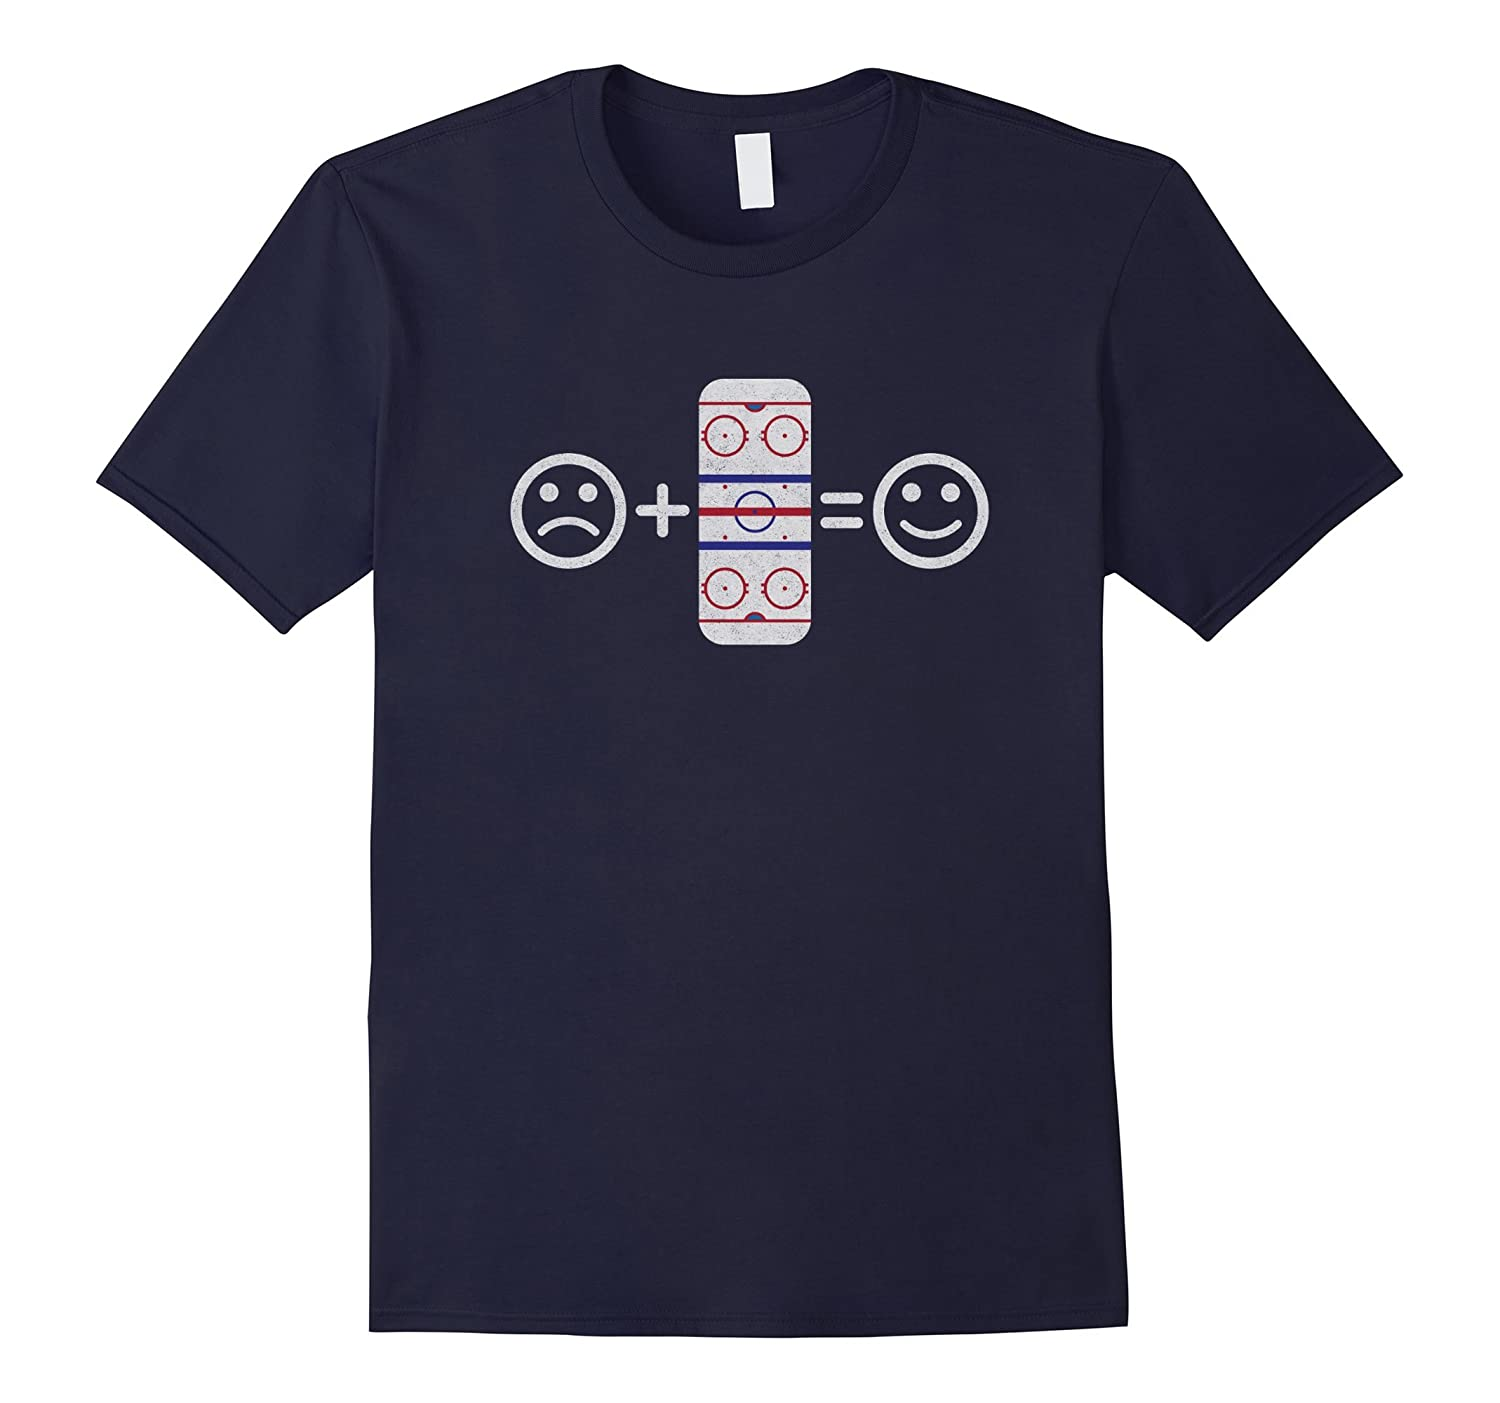 Sad Face Ice Hockey Player, Figure Skater, & Curling T-Shirt-TH